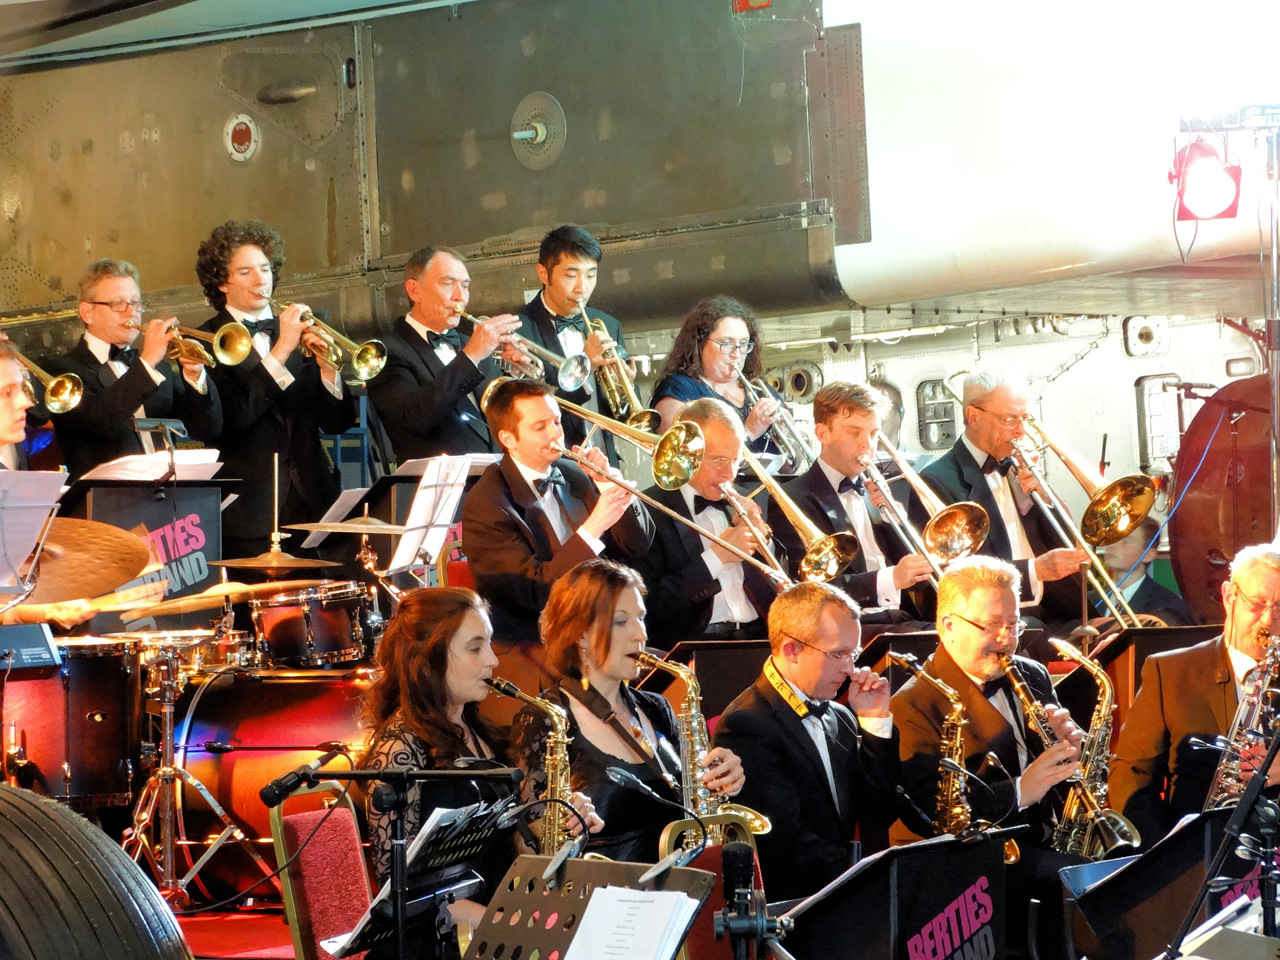 Jazz Picnic with Bertie's Big Band at Martock